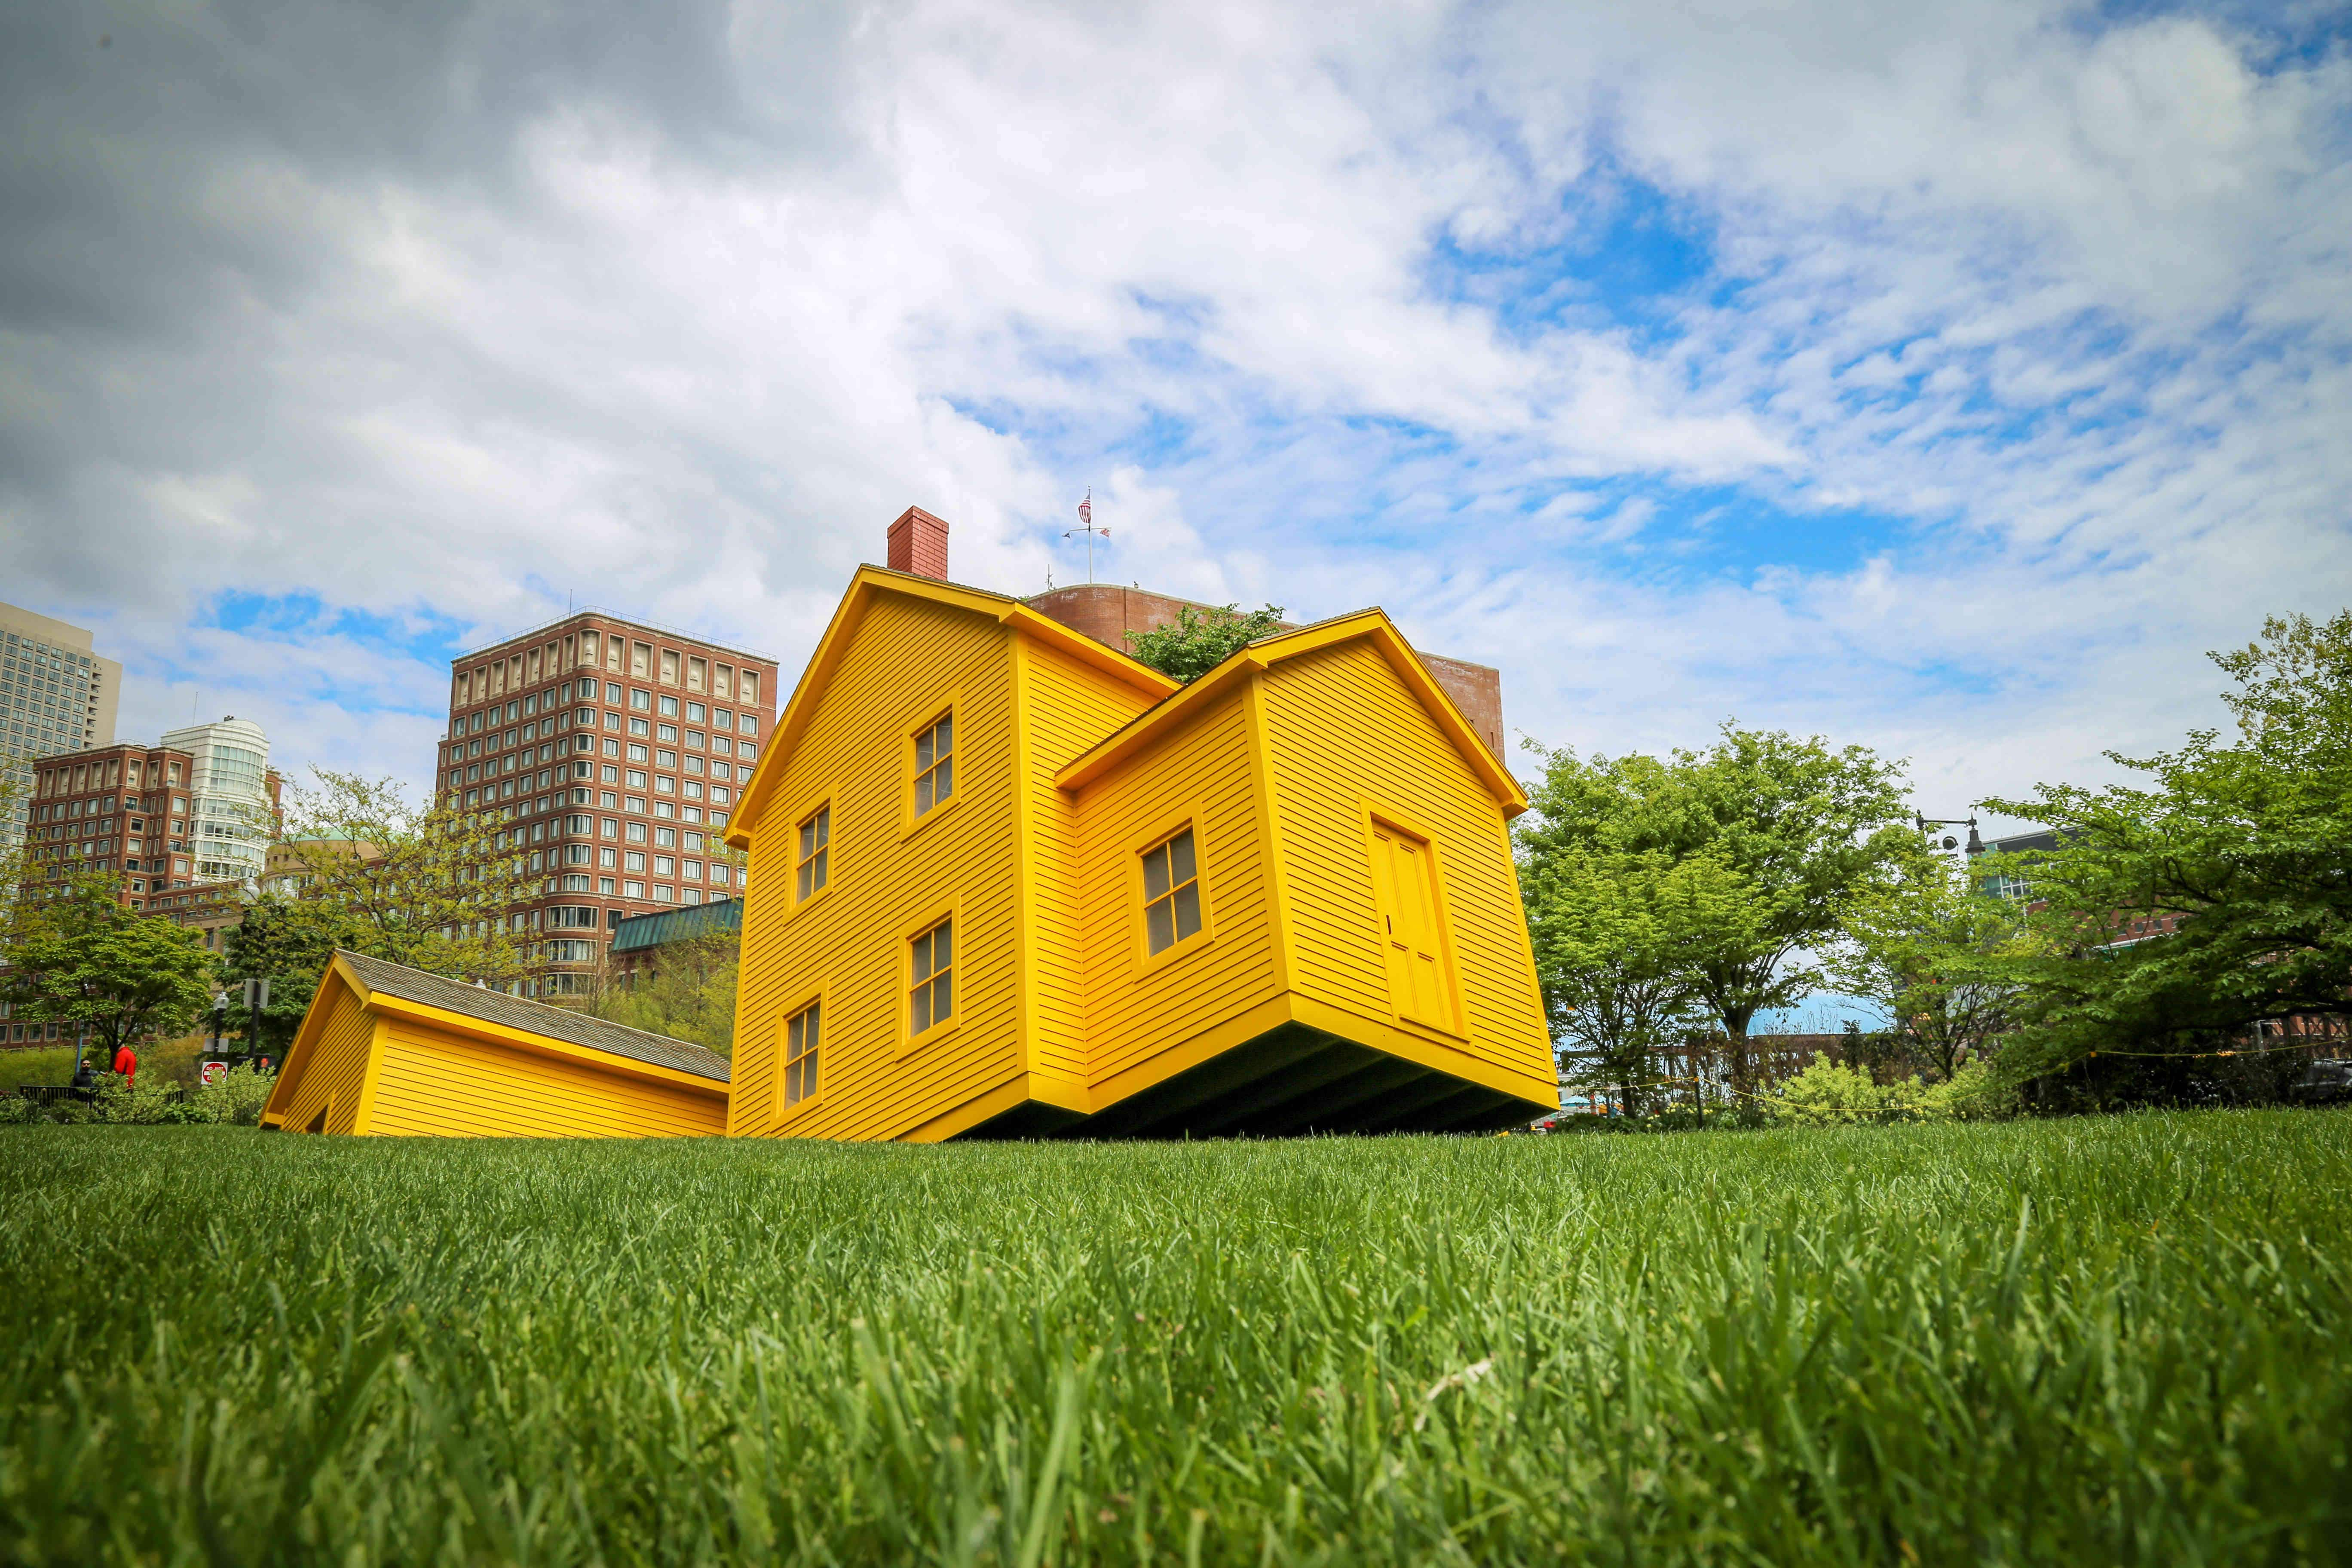 A yellow Quaker-style house is sinking into the ground in downtown Boston